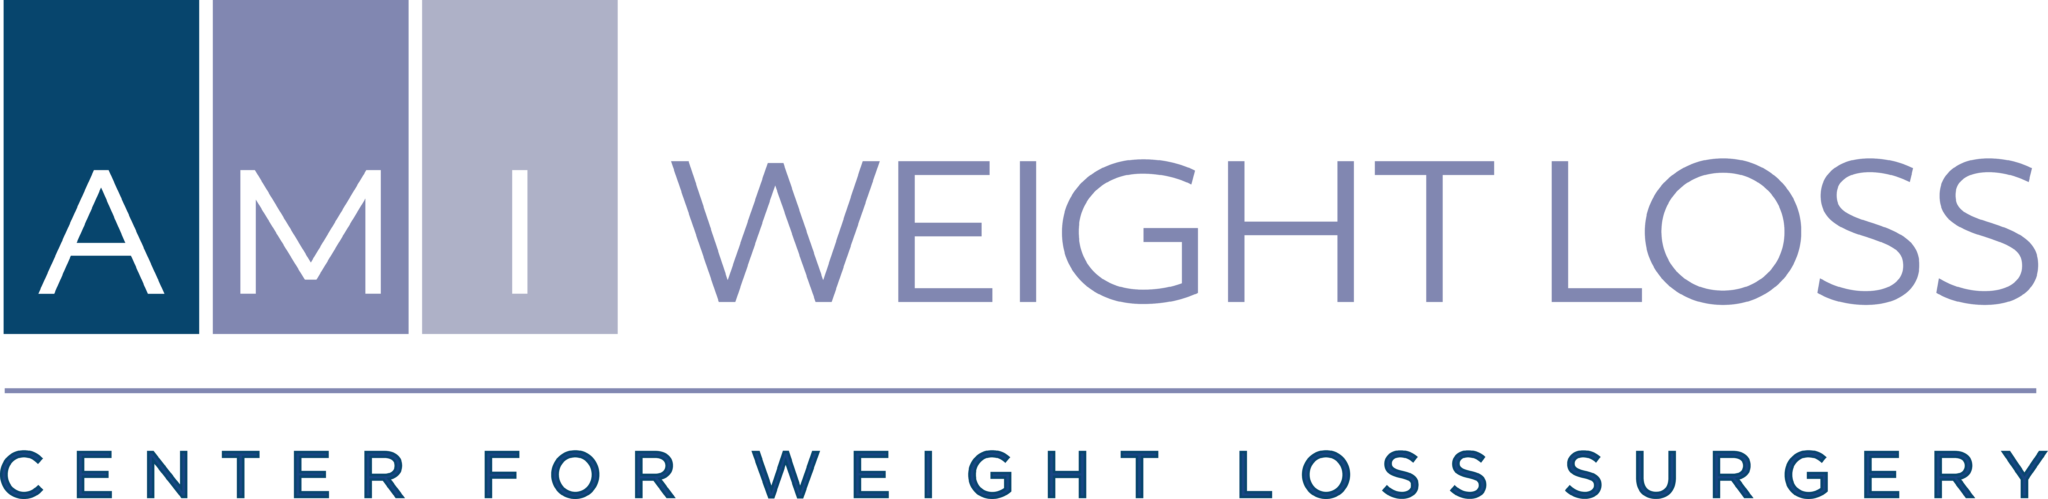 AMI Weight Loss Center